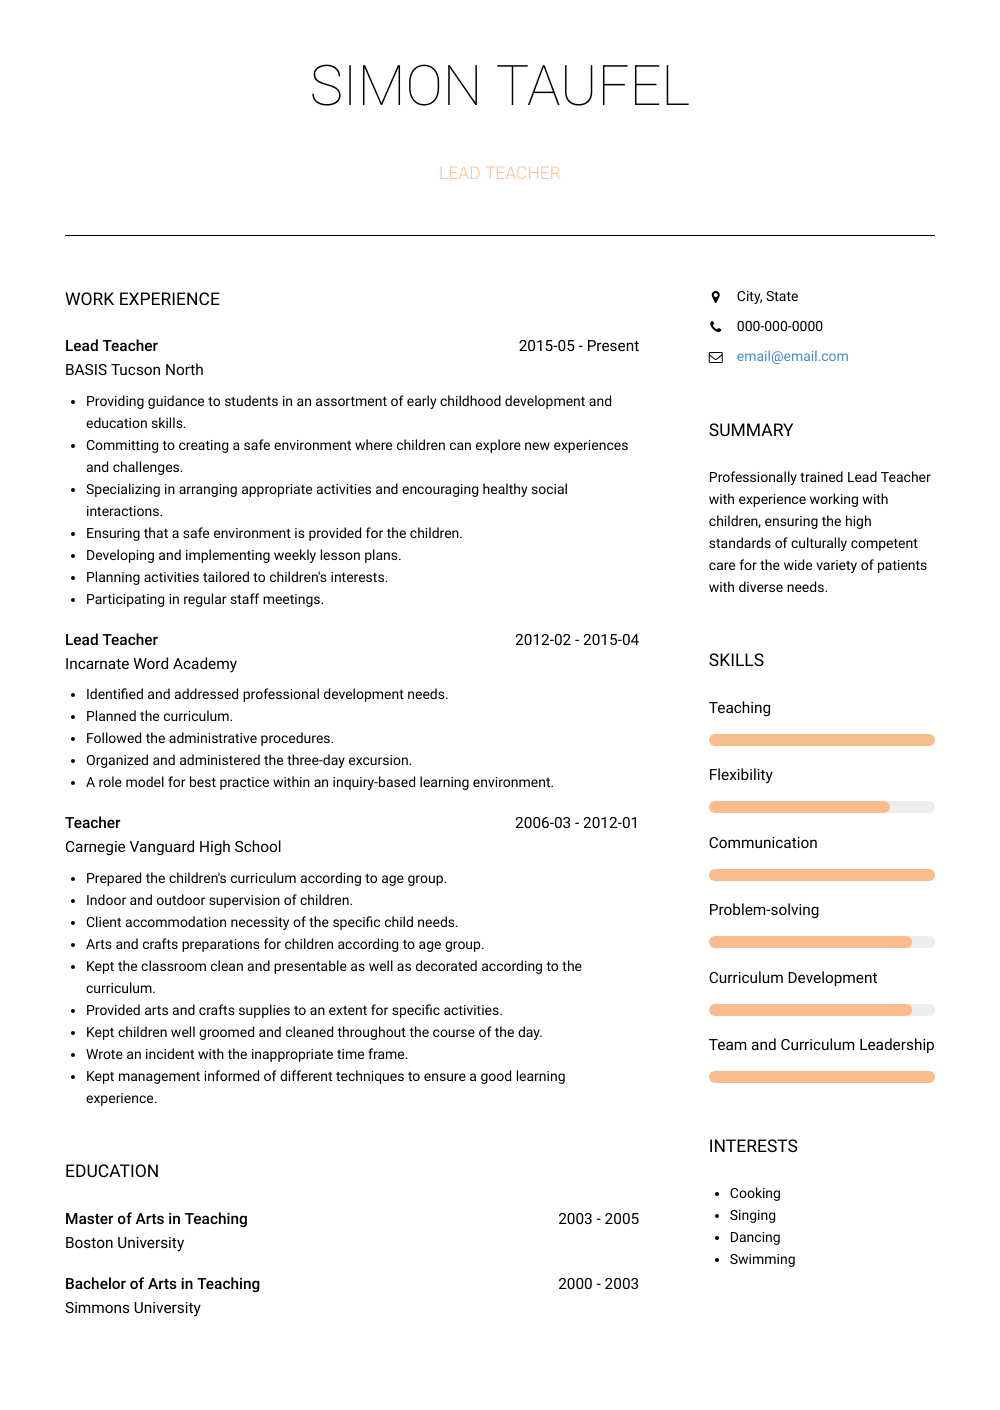 Teacher Resume Samples and Templates VisualCV in 2020